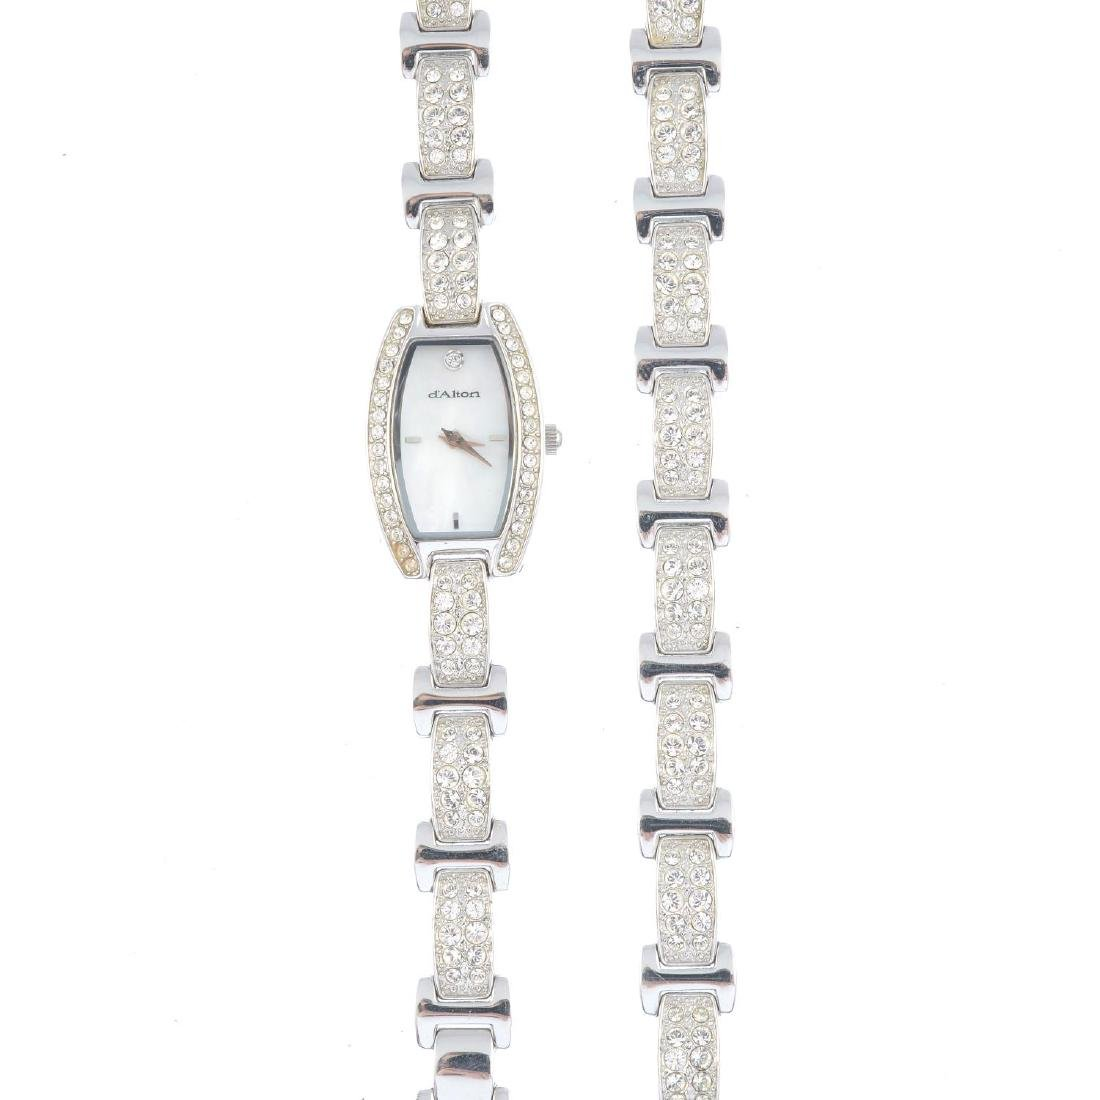 (203503) A lady's cocktail watch and matching bracelet.